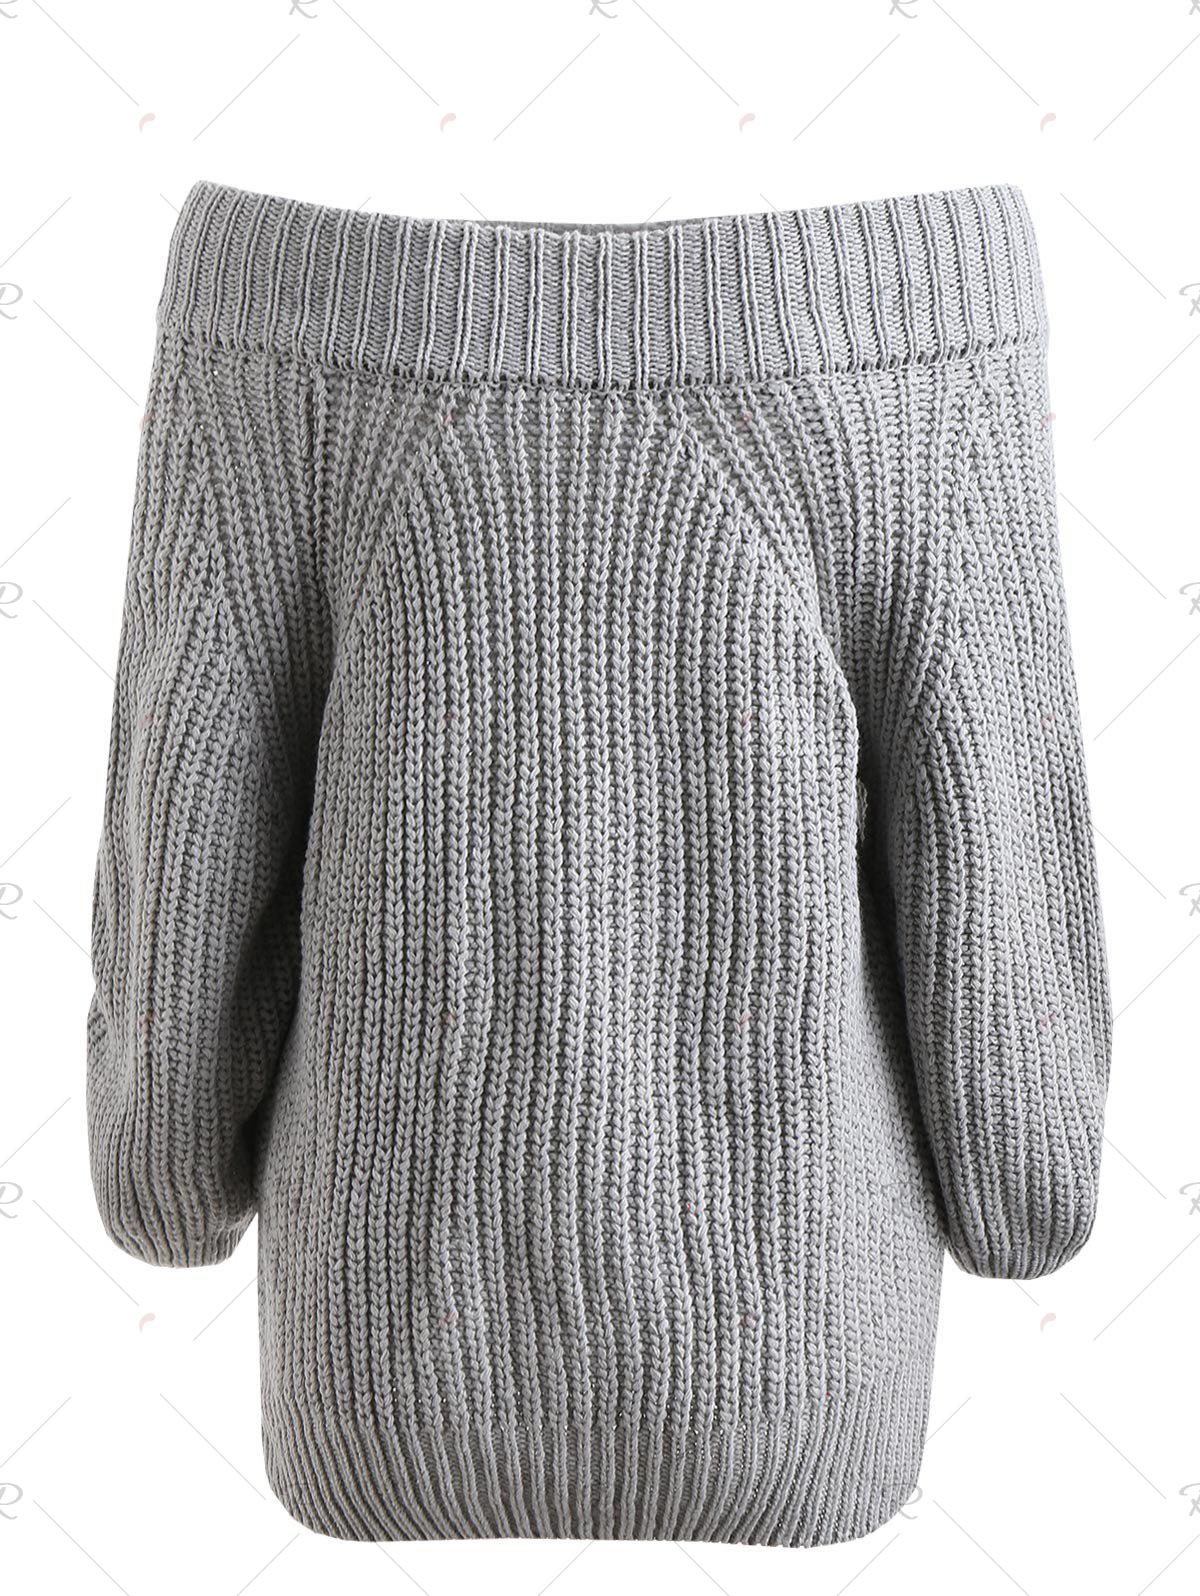 https://www.rosegal.com/sweaters-cardigans/pullover-off-the-shoulder-chunky-sweater-2341140.html?lkid=16127505